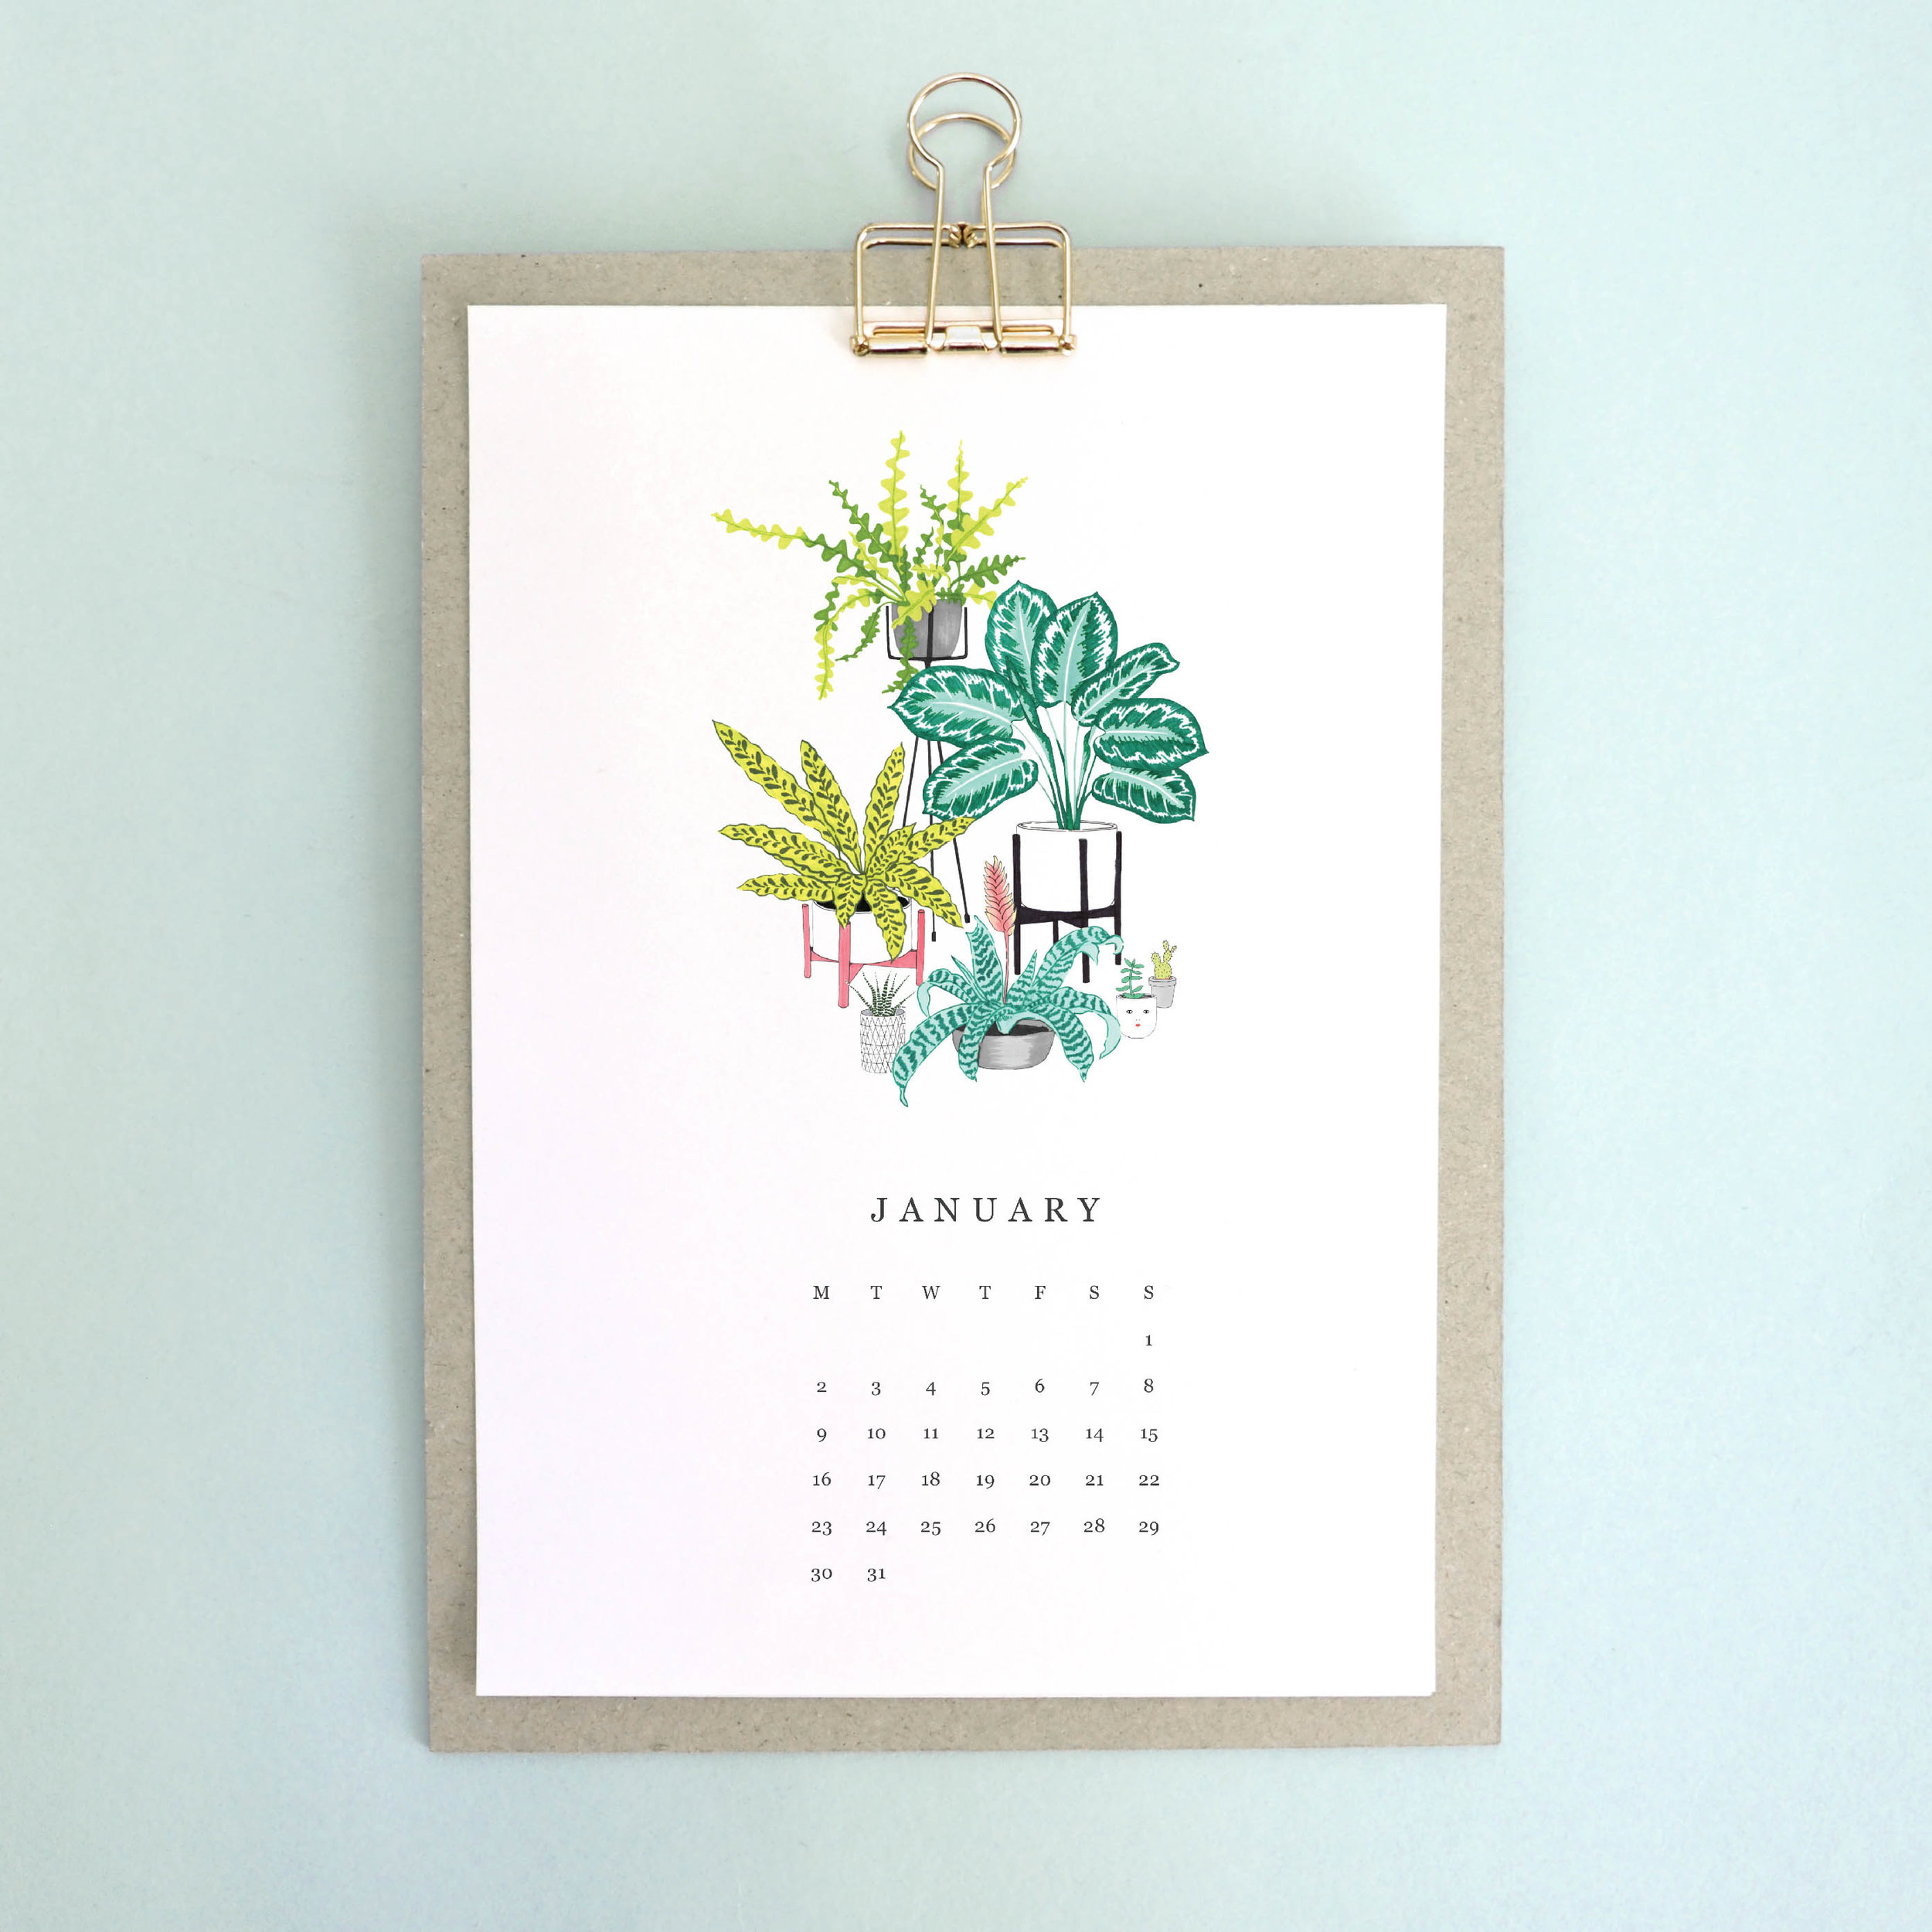 Clipboard-Calendar-Jan.jpg